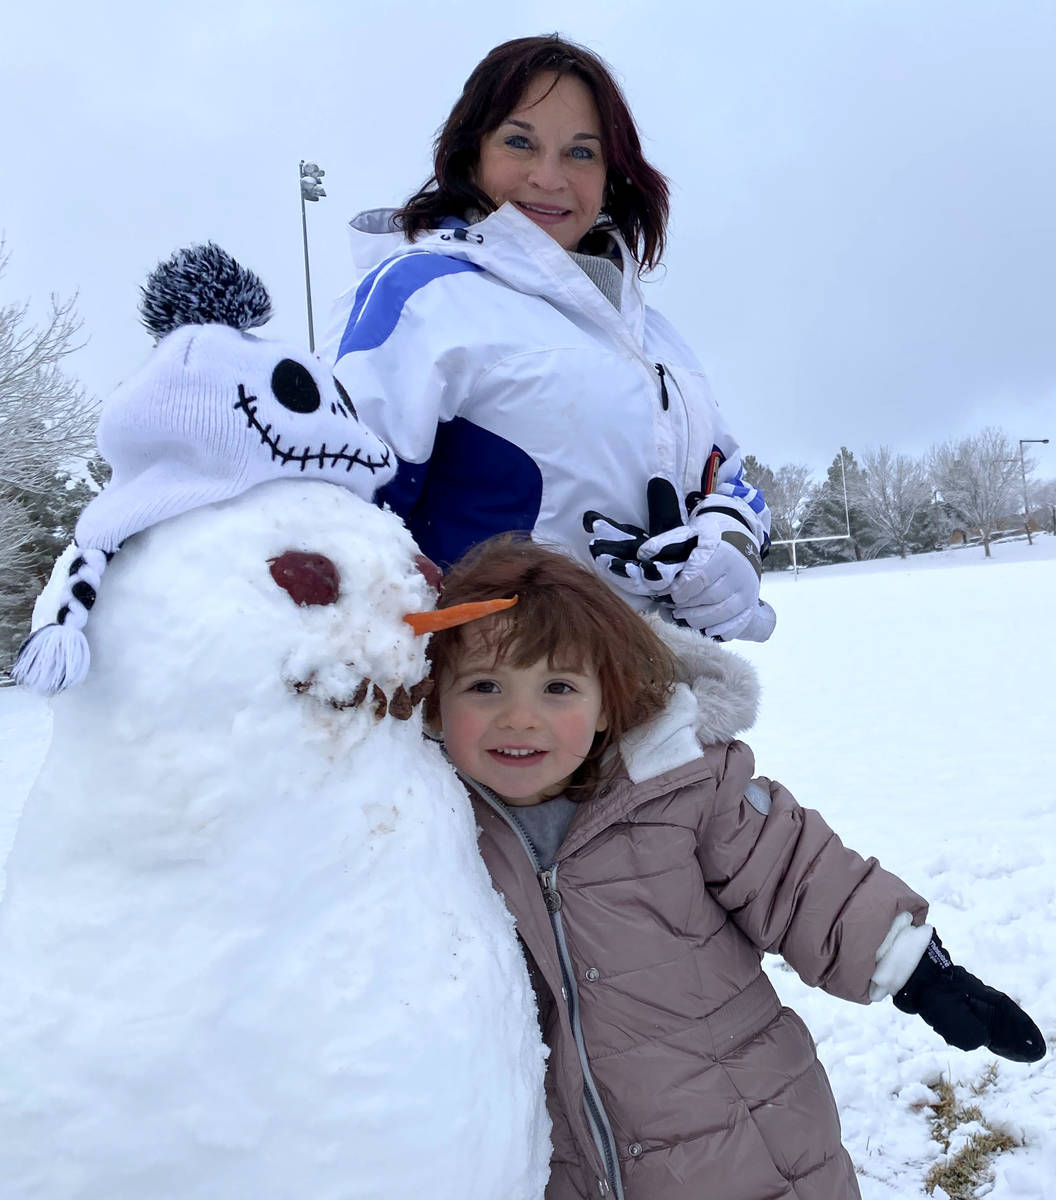 Rylie OՂrien, 3, and her grandmother Lisa Hauger pose for a photo with a snowman after ma ...